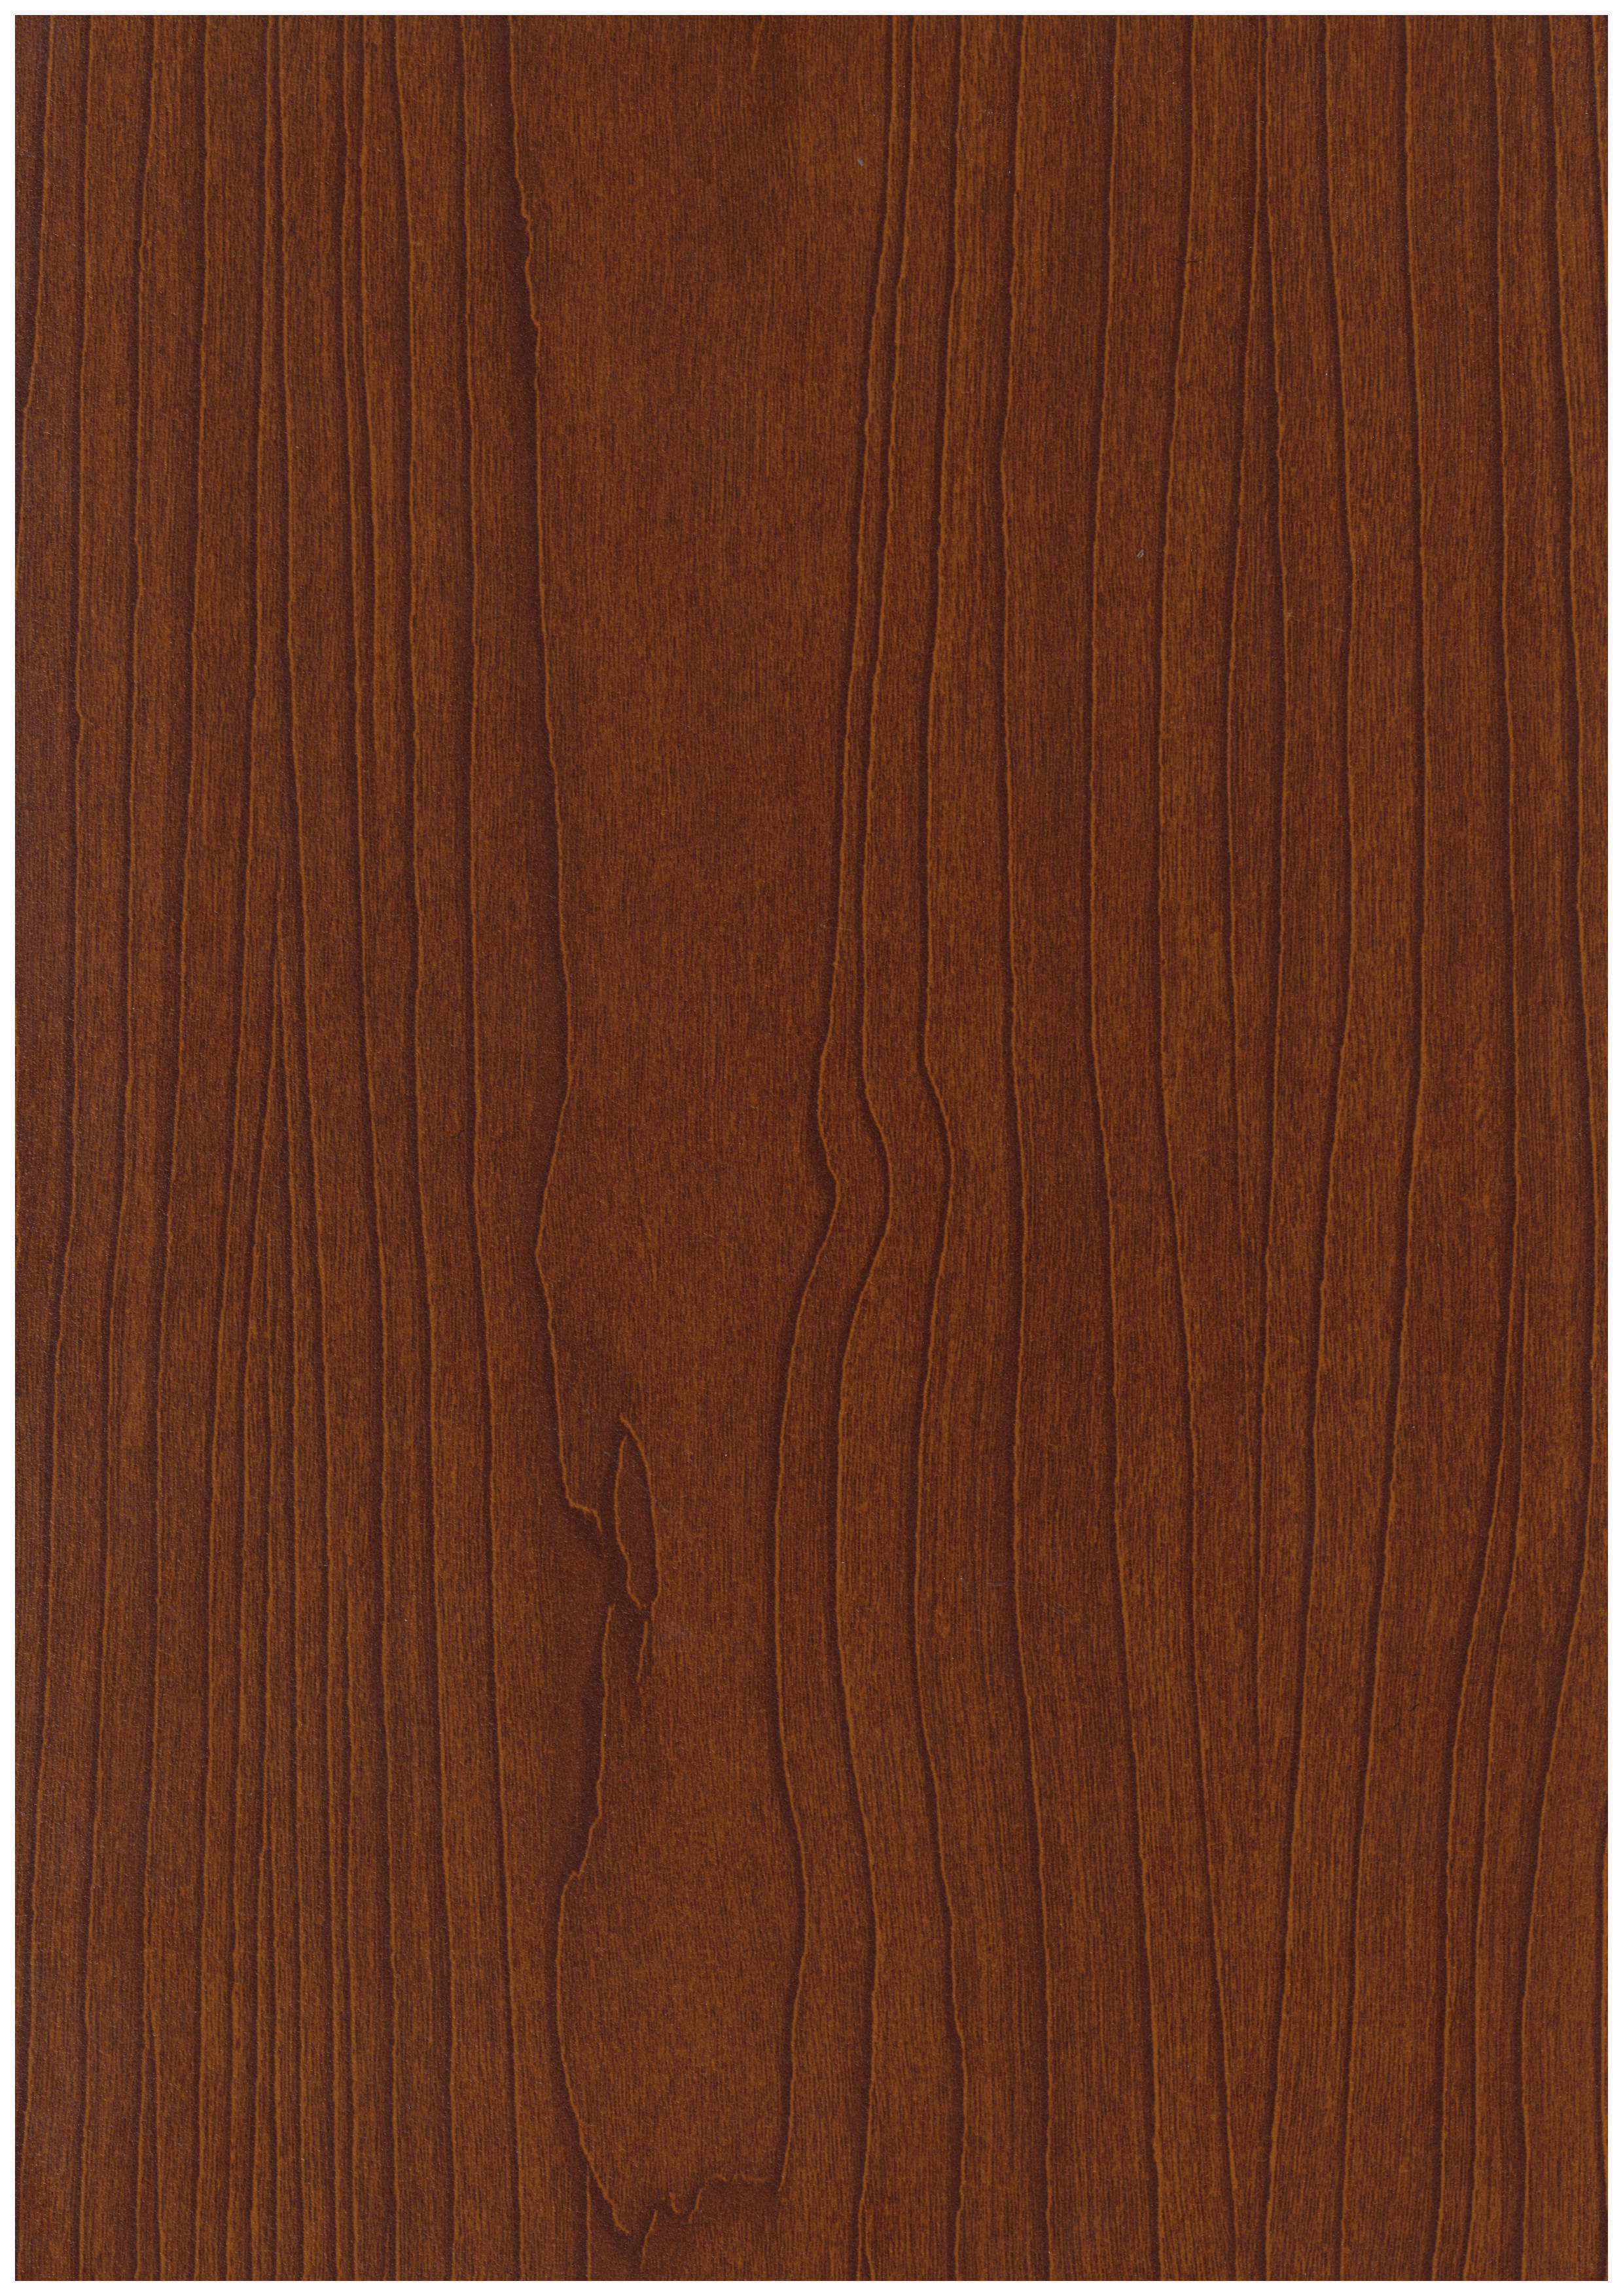 Holzarten Farbe Knotwood - Largest Range Of Wood Grain Colours On Aluminium